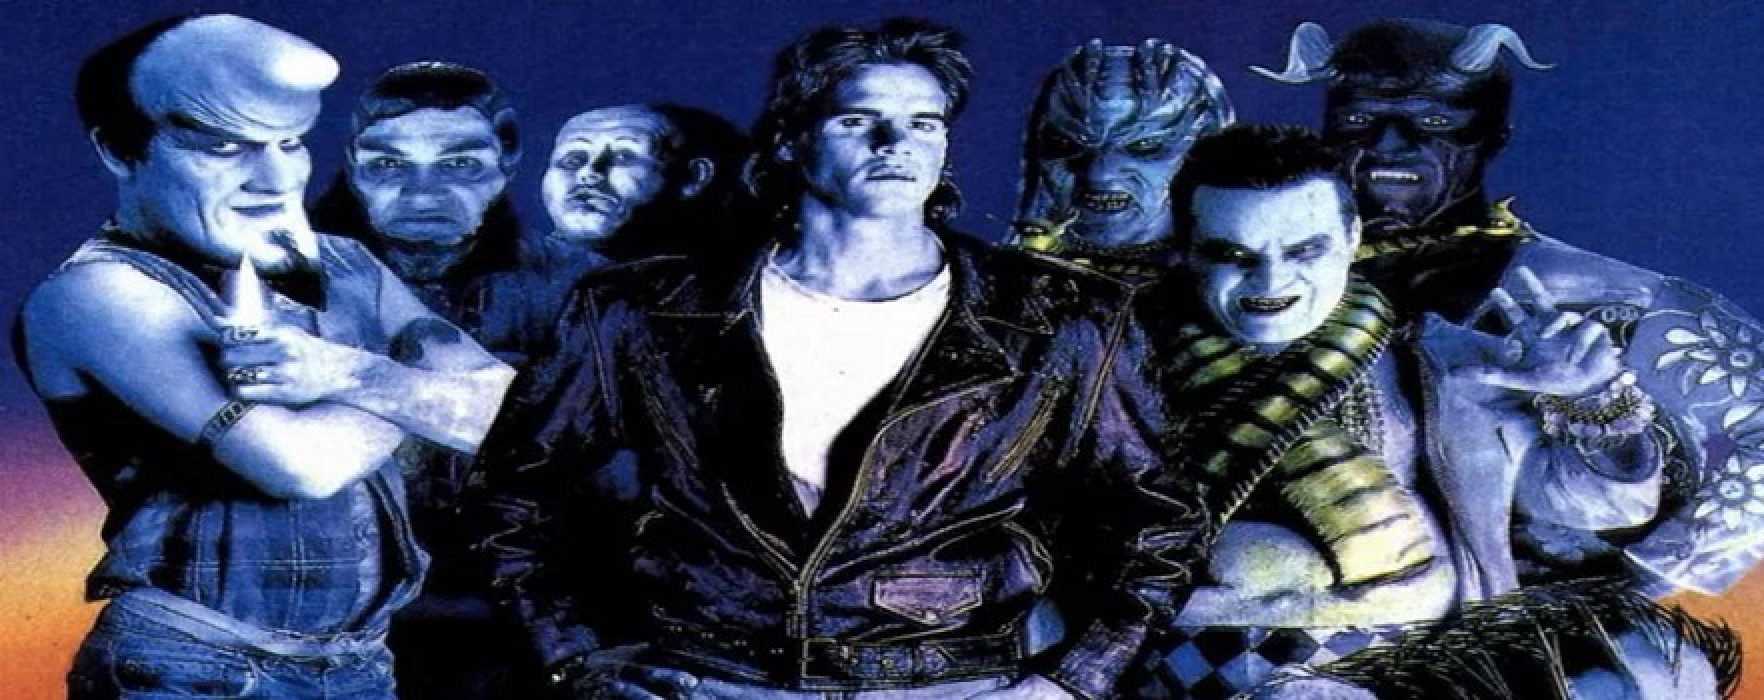 Clive Barker's Nightbreed Coming to Series TV